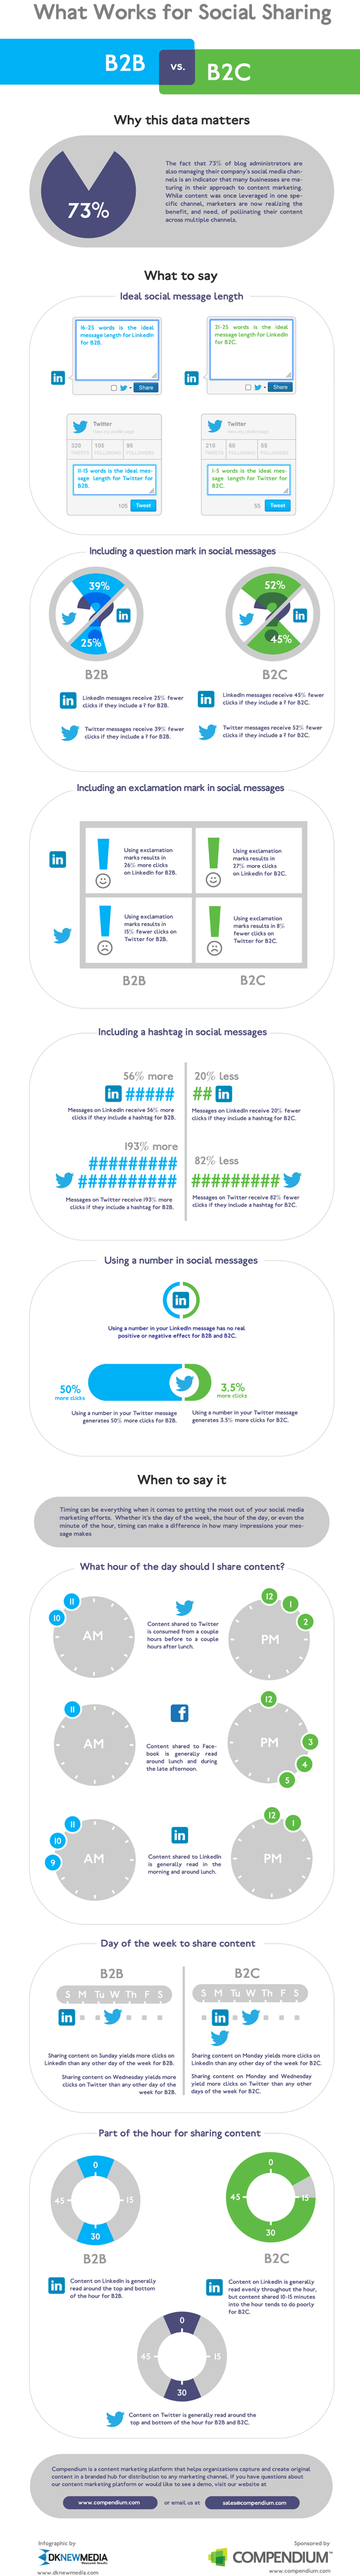 Social Sharing Tips-Infographic